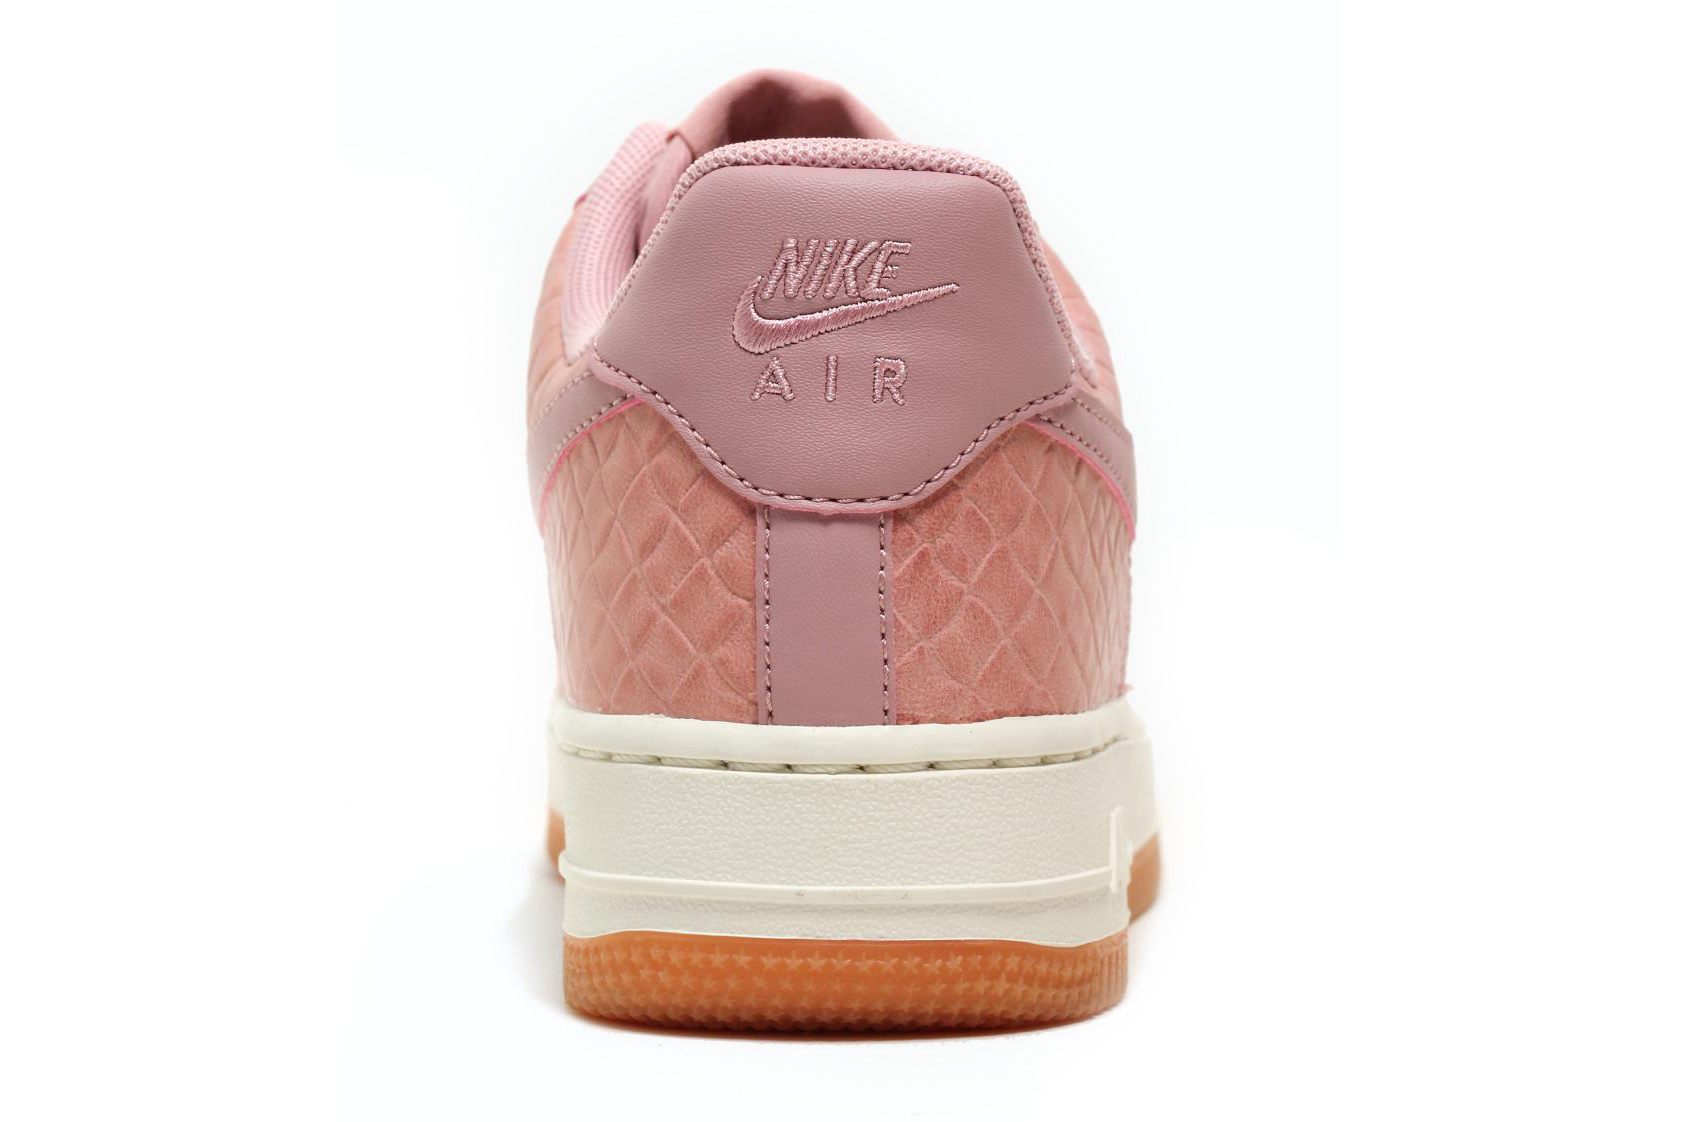 Nike Air Force 1 Pink Glaze - 78437